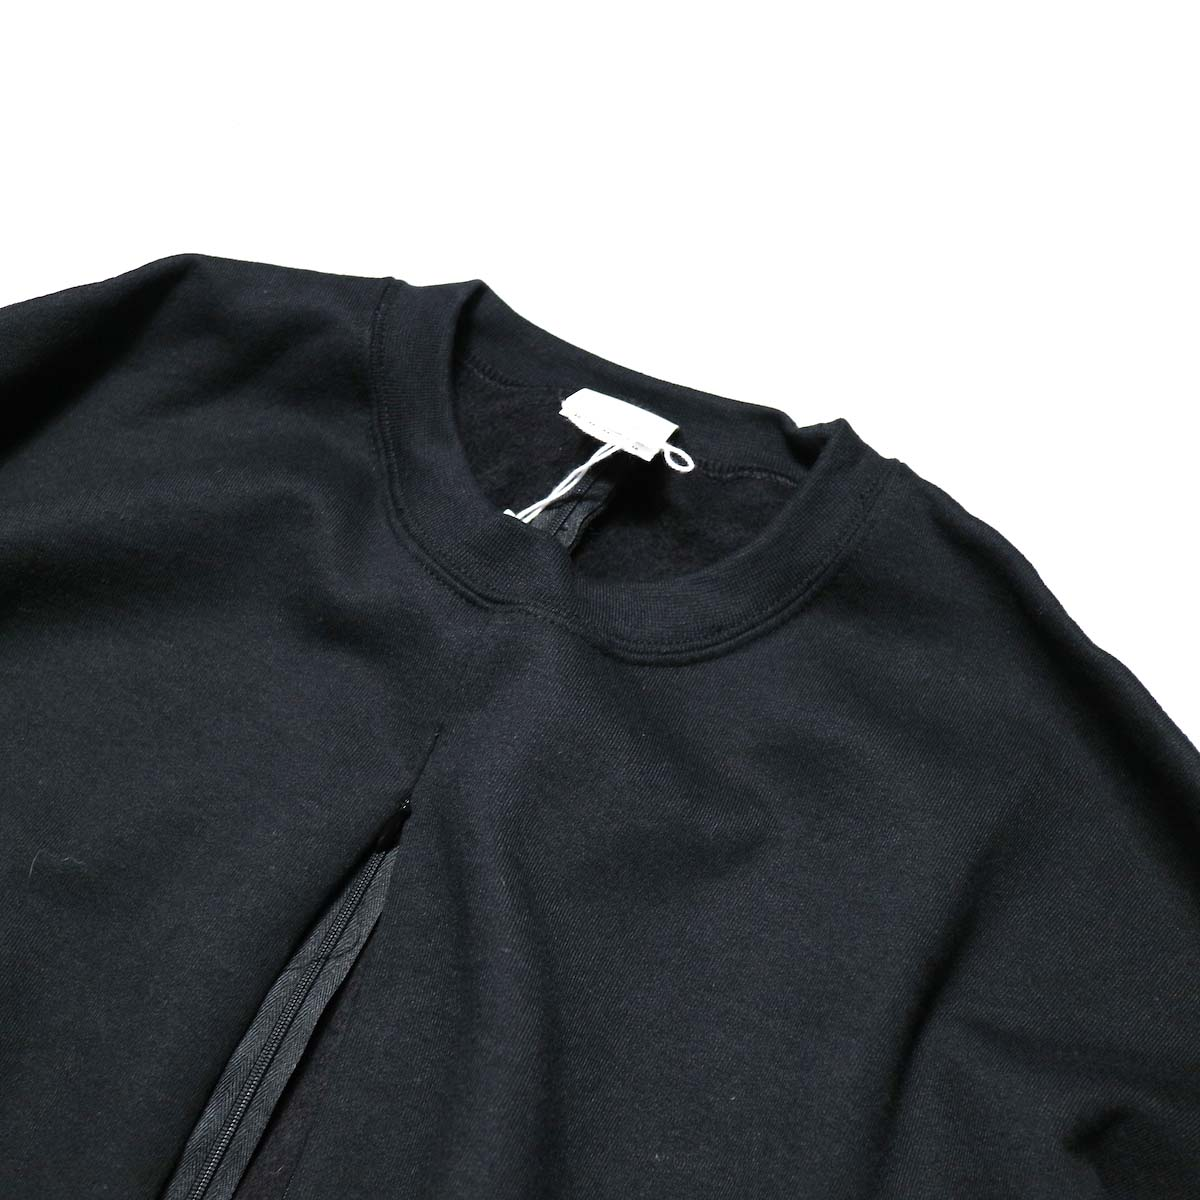 PRE_ / F&B OPEN SWEAT (Black)クルーネック